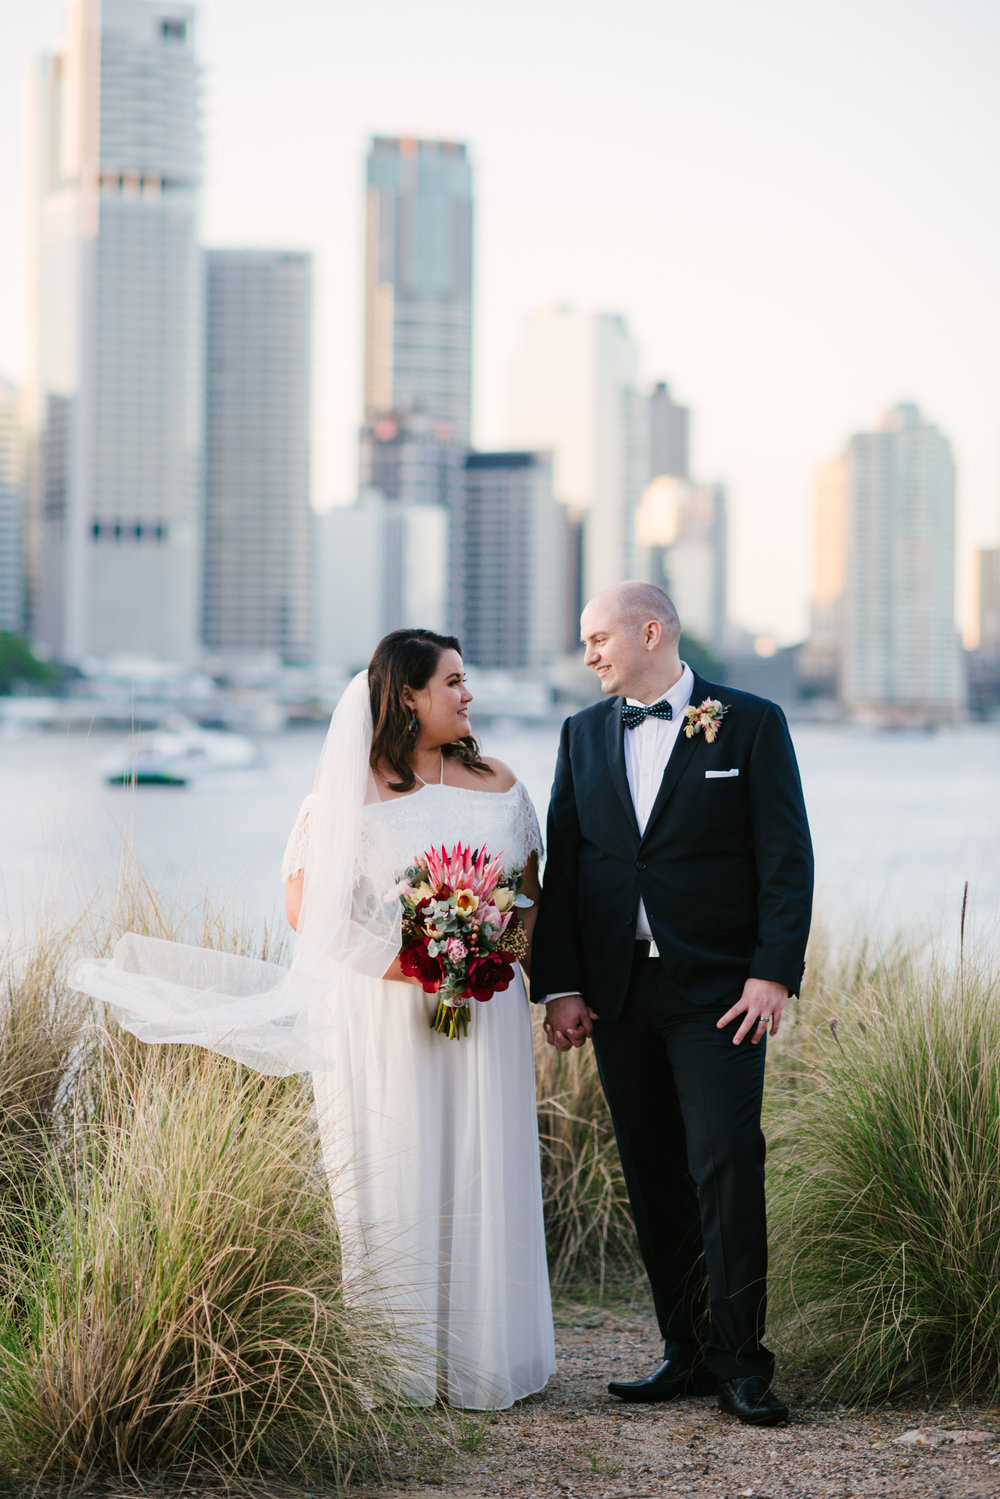 Lovelenscapes Photography • Brisbane Wedding Photographers • Landing at Dockside • Kangaroo Point Wedding Brisbane